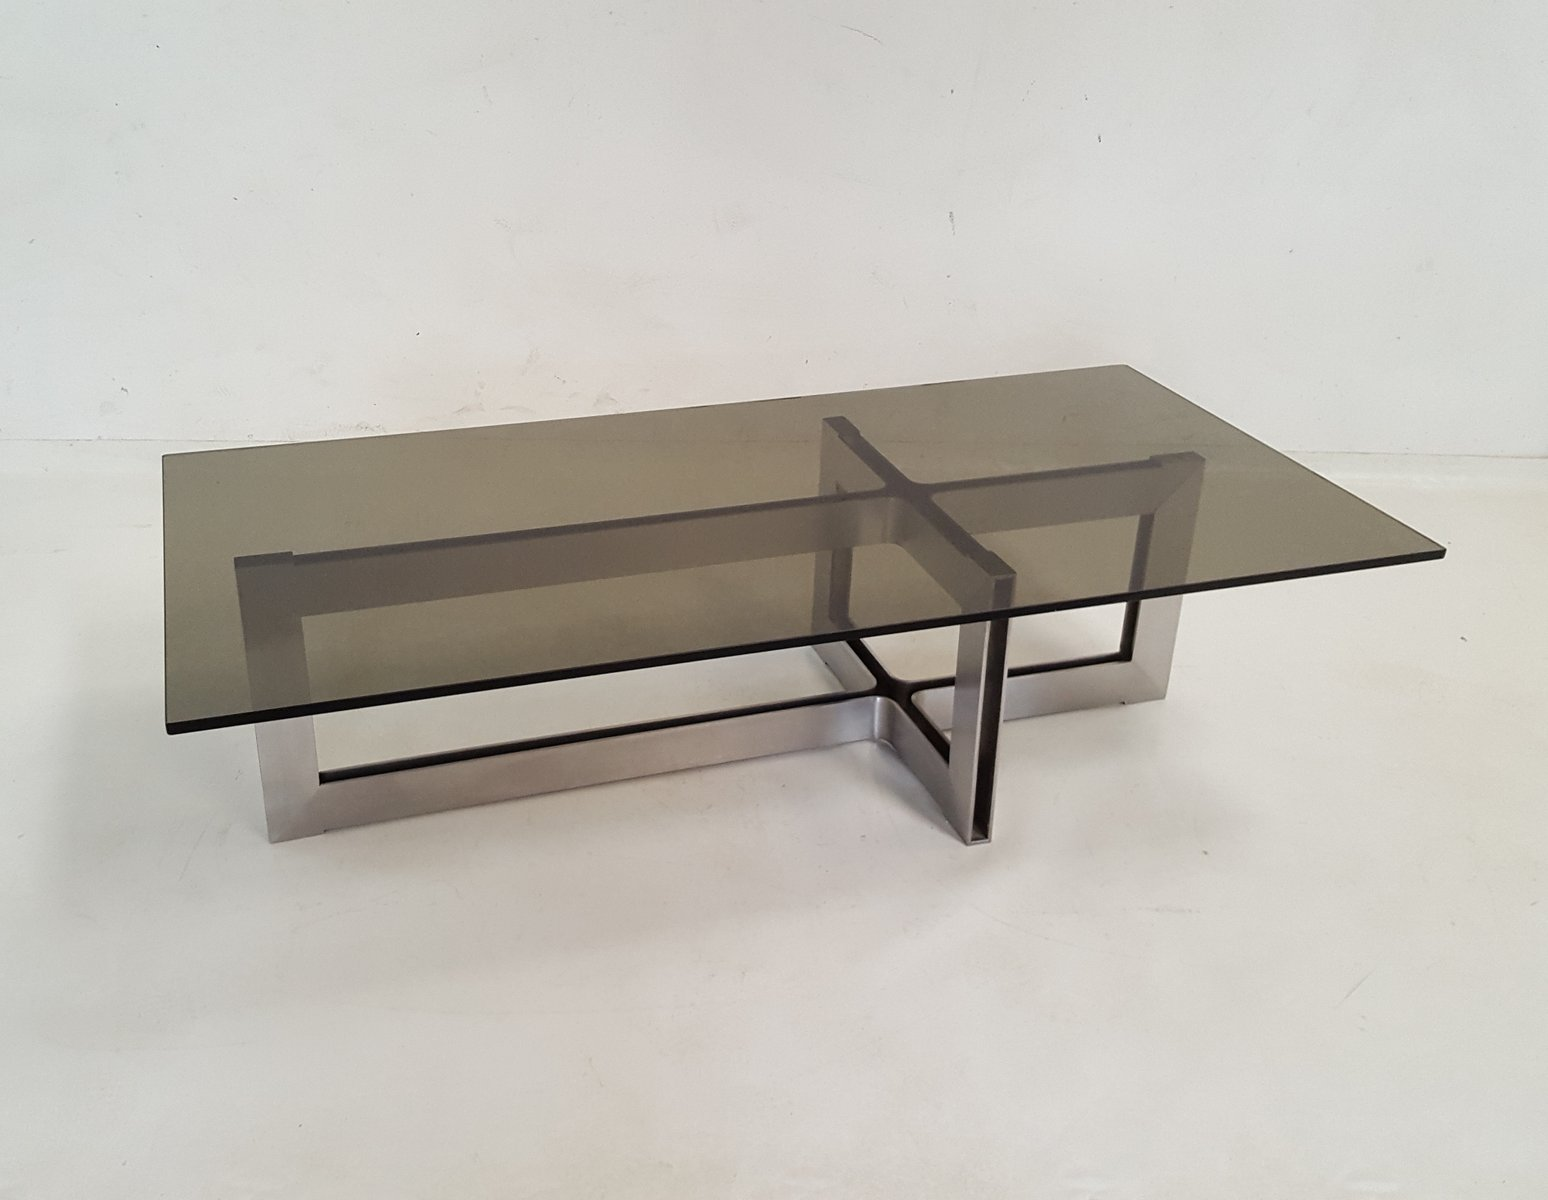 Stainless Steel And Glass Coffee Table, 1970s 11. $1,347.00. Price Per Piece